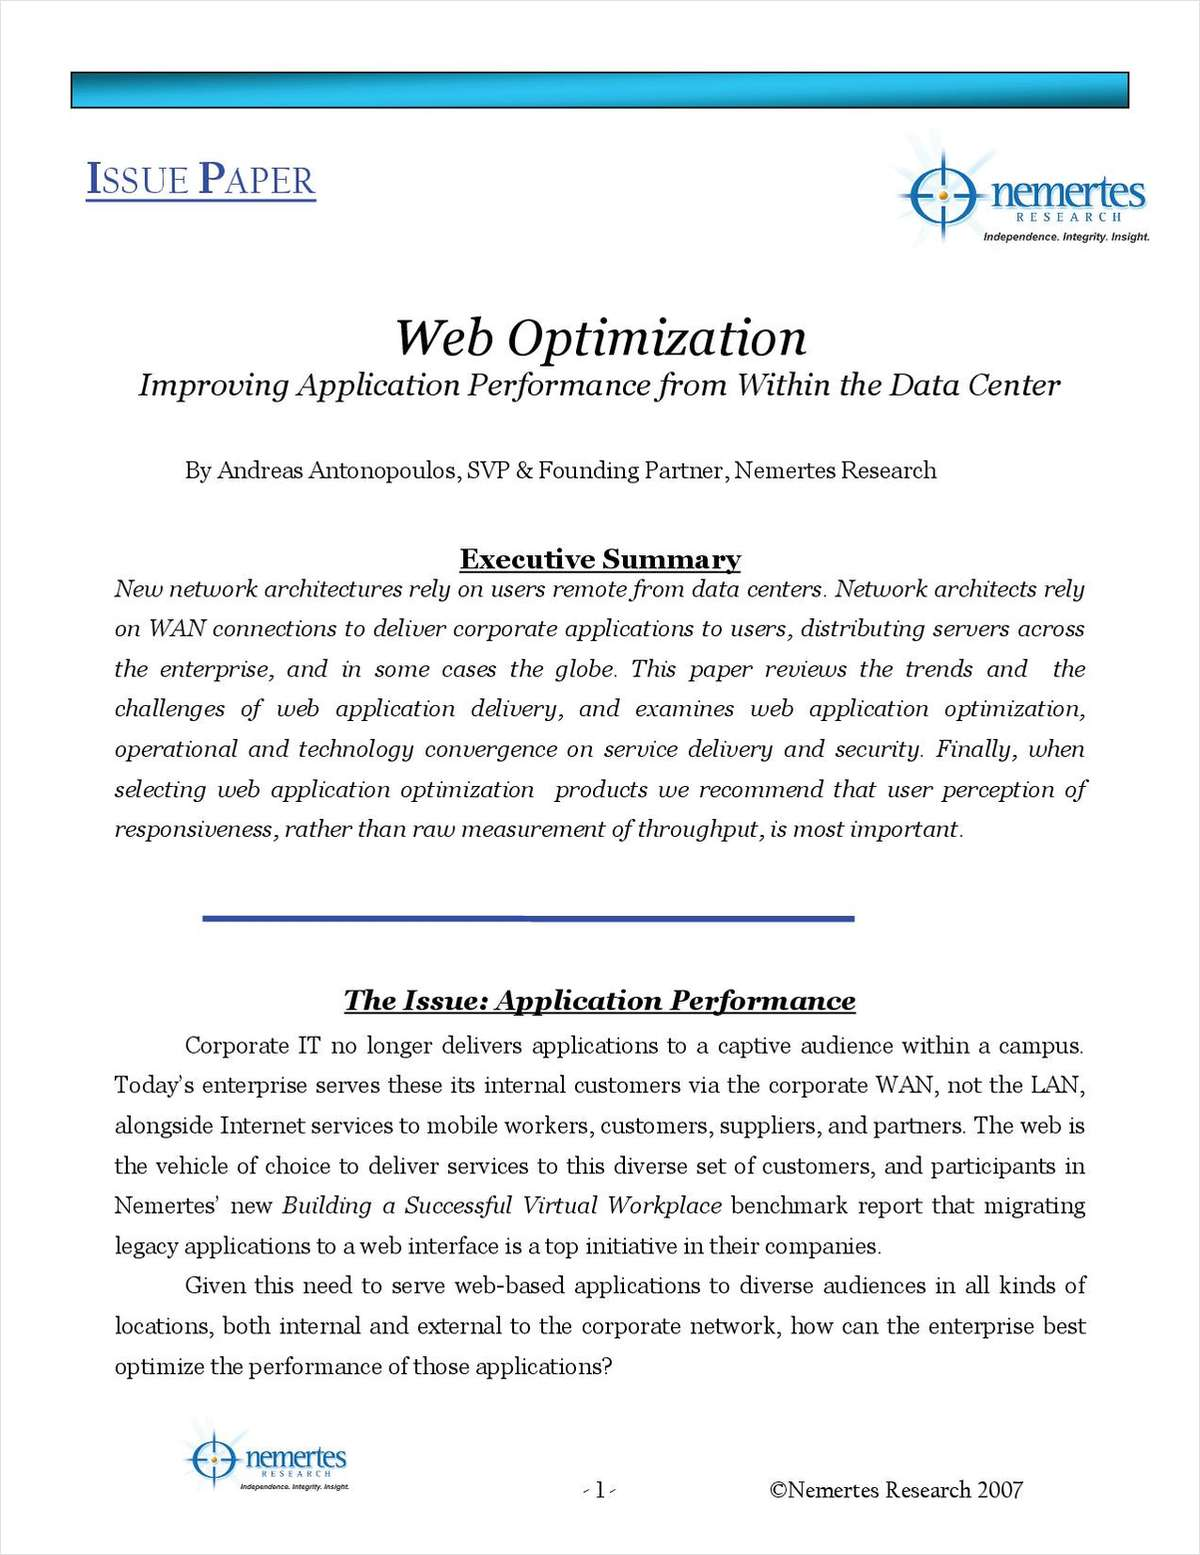 Improving Application Performance from Within the Data Center